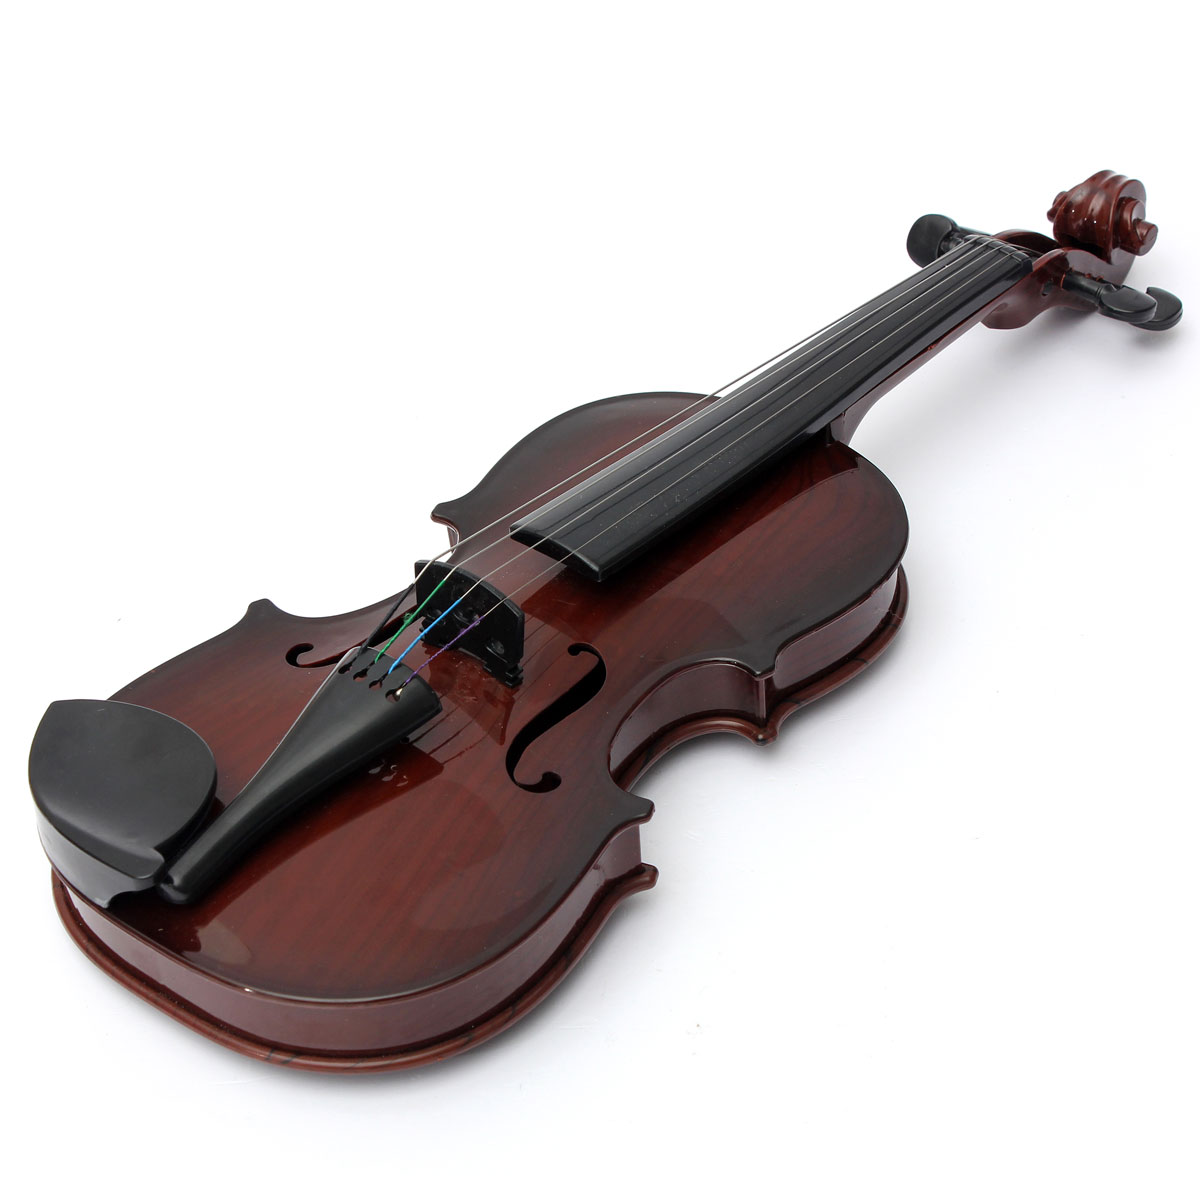 Adjustable String Musical Beginner develop Kid talent Simulation Toys Bow Acoustic Violin Practice Demo Instrument Children Gift(China (Mainland))